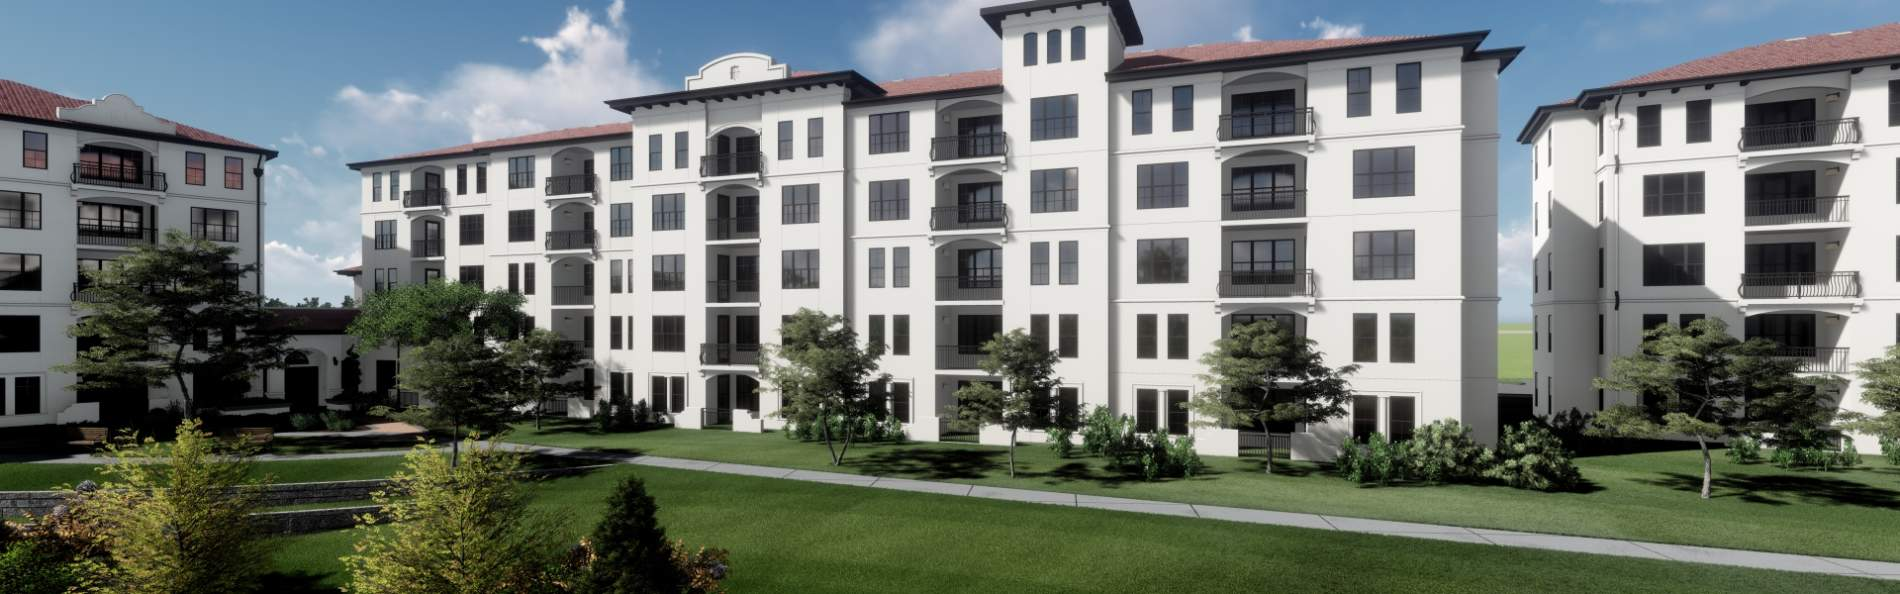 Clancy & Theys Construction management towardsWestminster Baldwin Park II extension to senior living facility